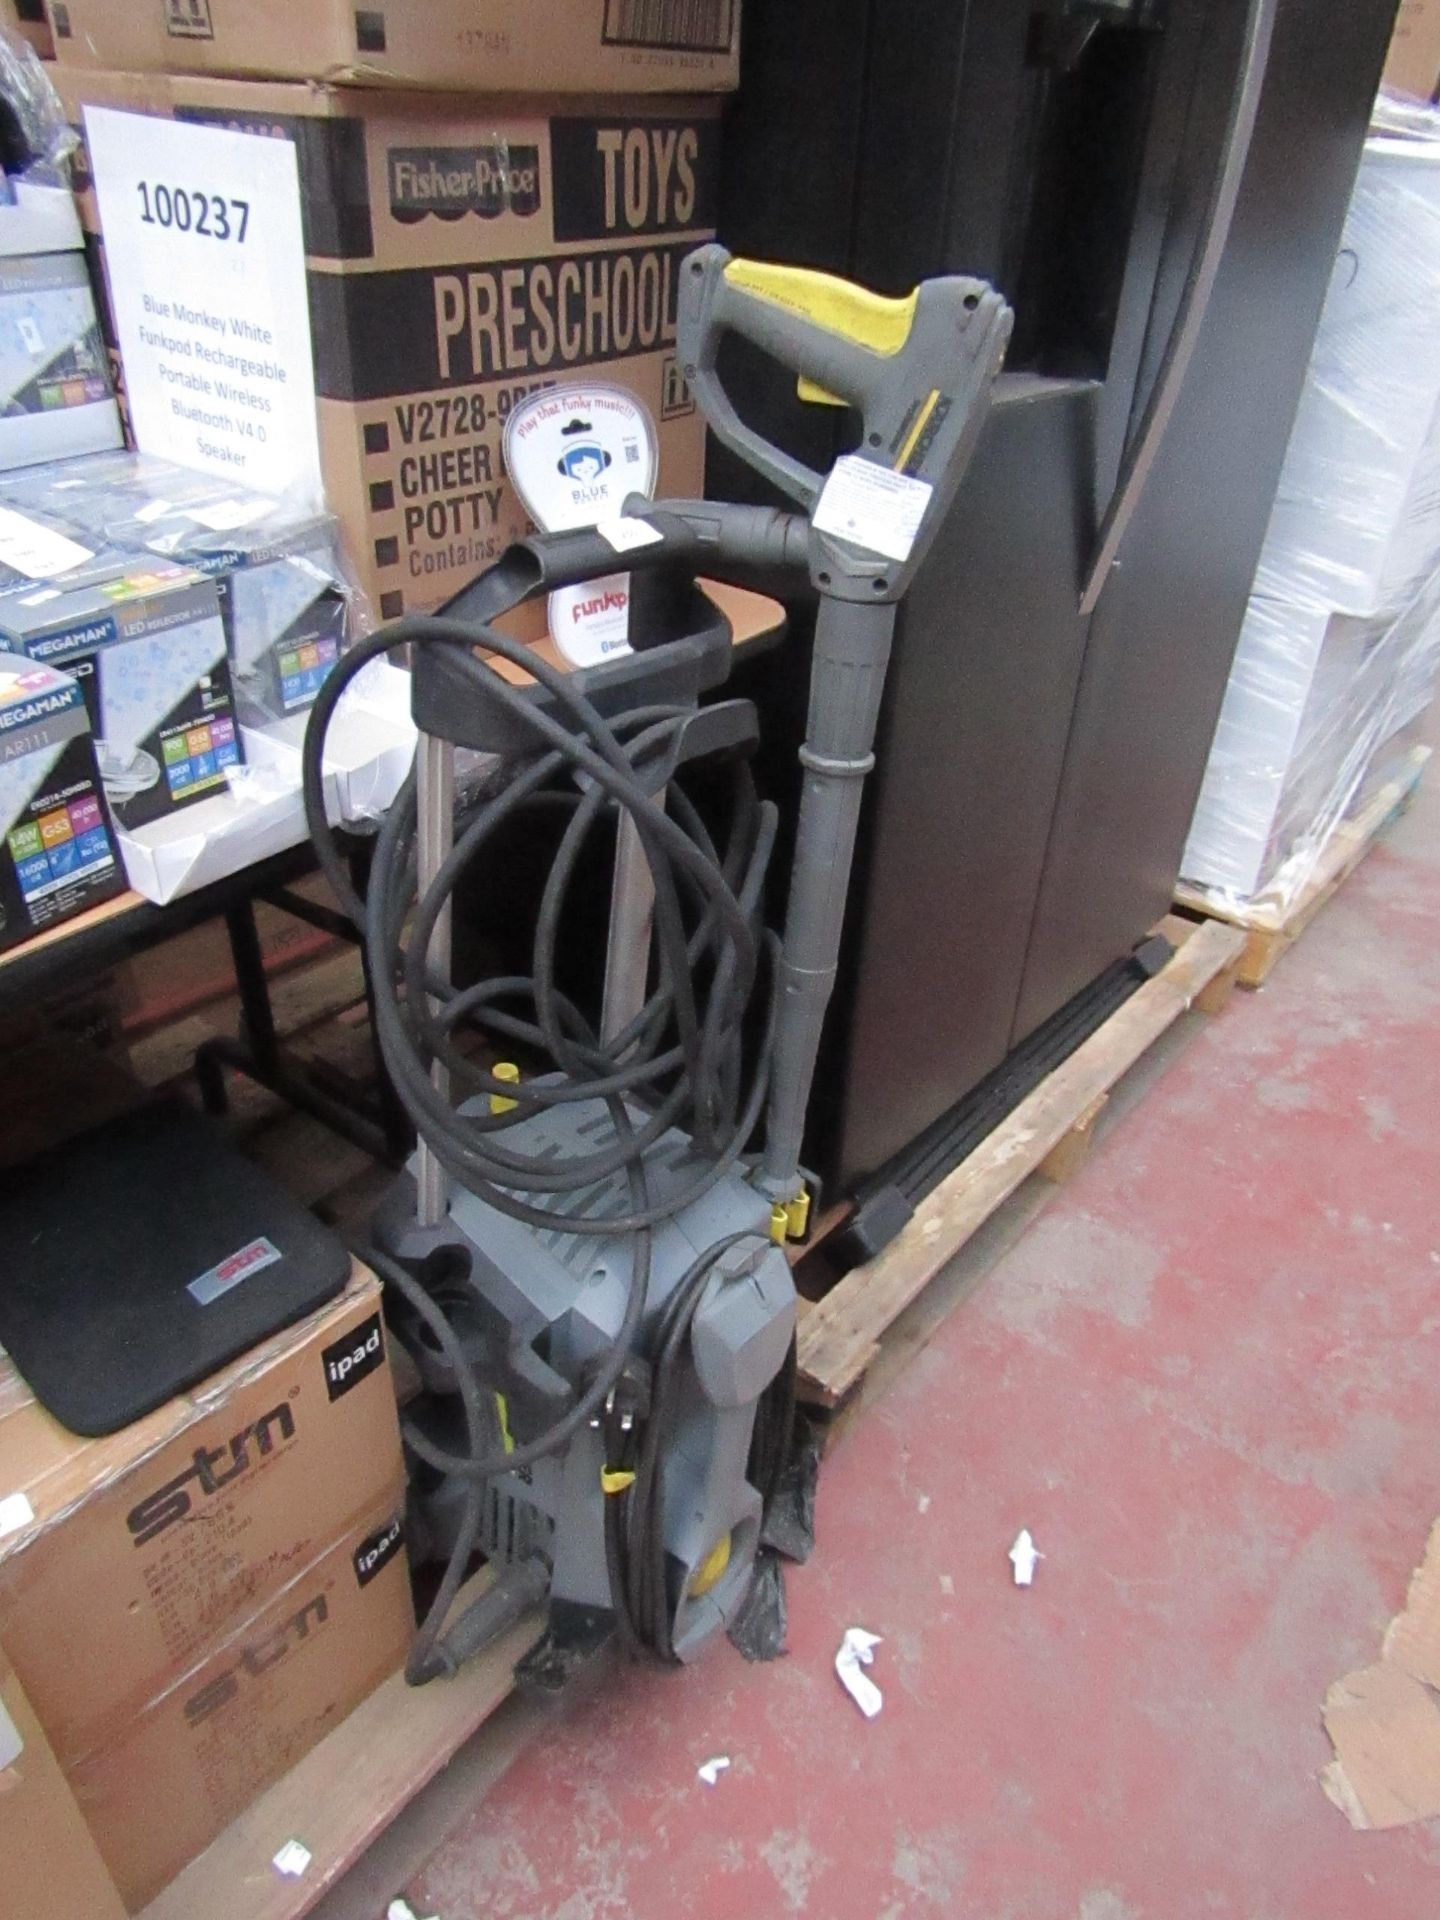 Karcher Professional pressure washer, unchecked, has been used.